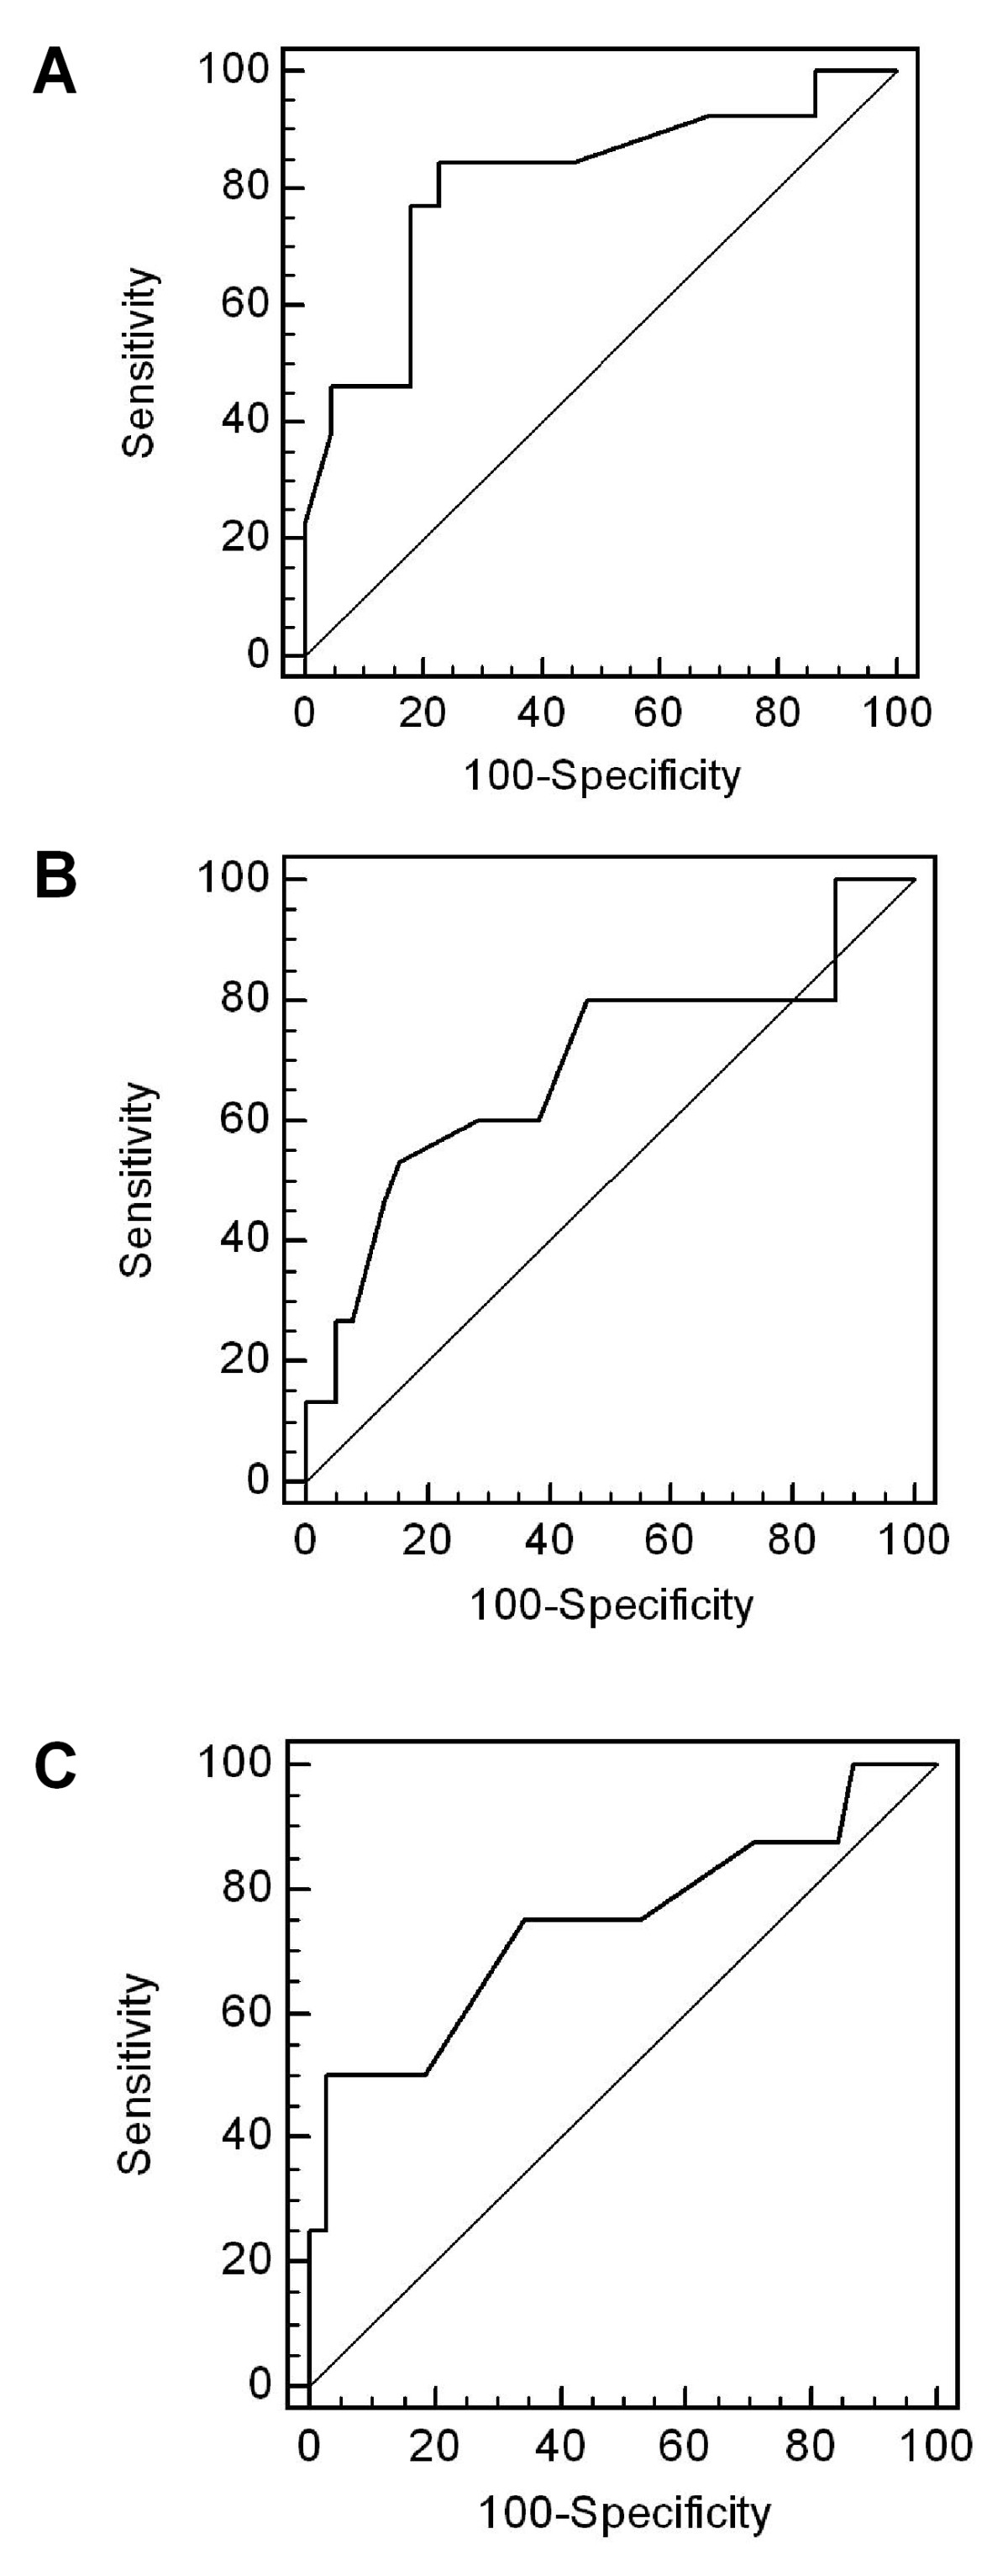 https://static-content.springer.com/image/art%3A10.1186%2F1471-2369-13-139/MediaObjects/12882_2012_Article_404_Fig3_HTML.jpg